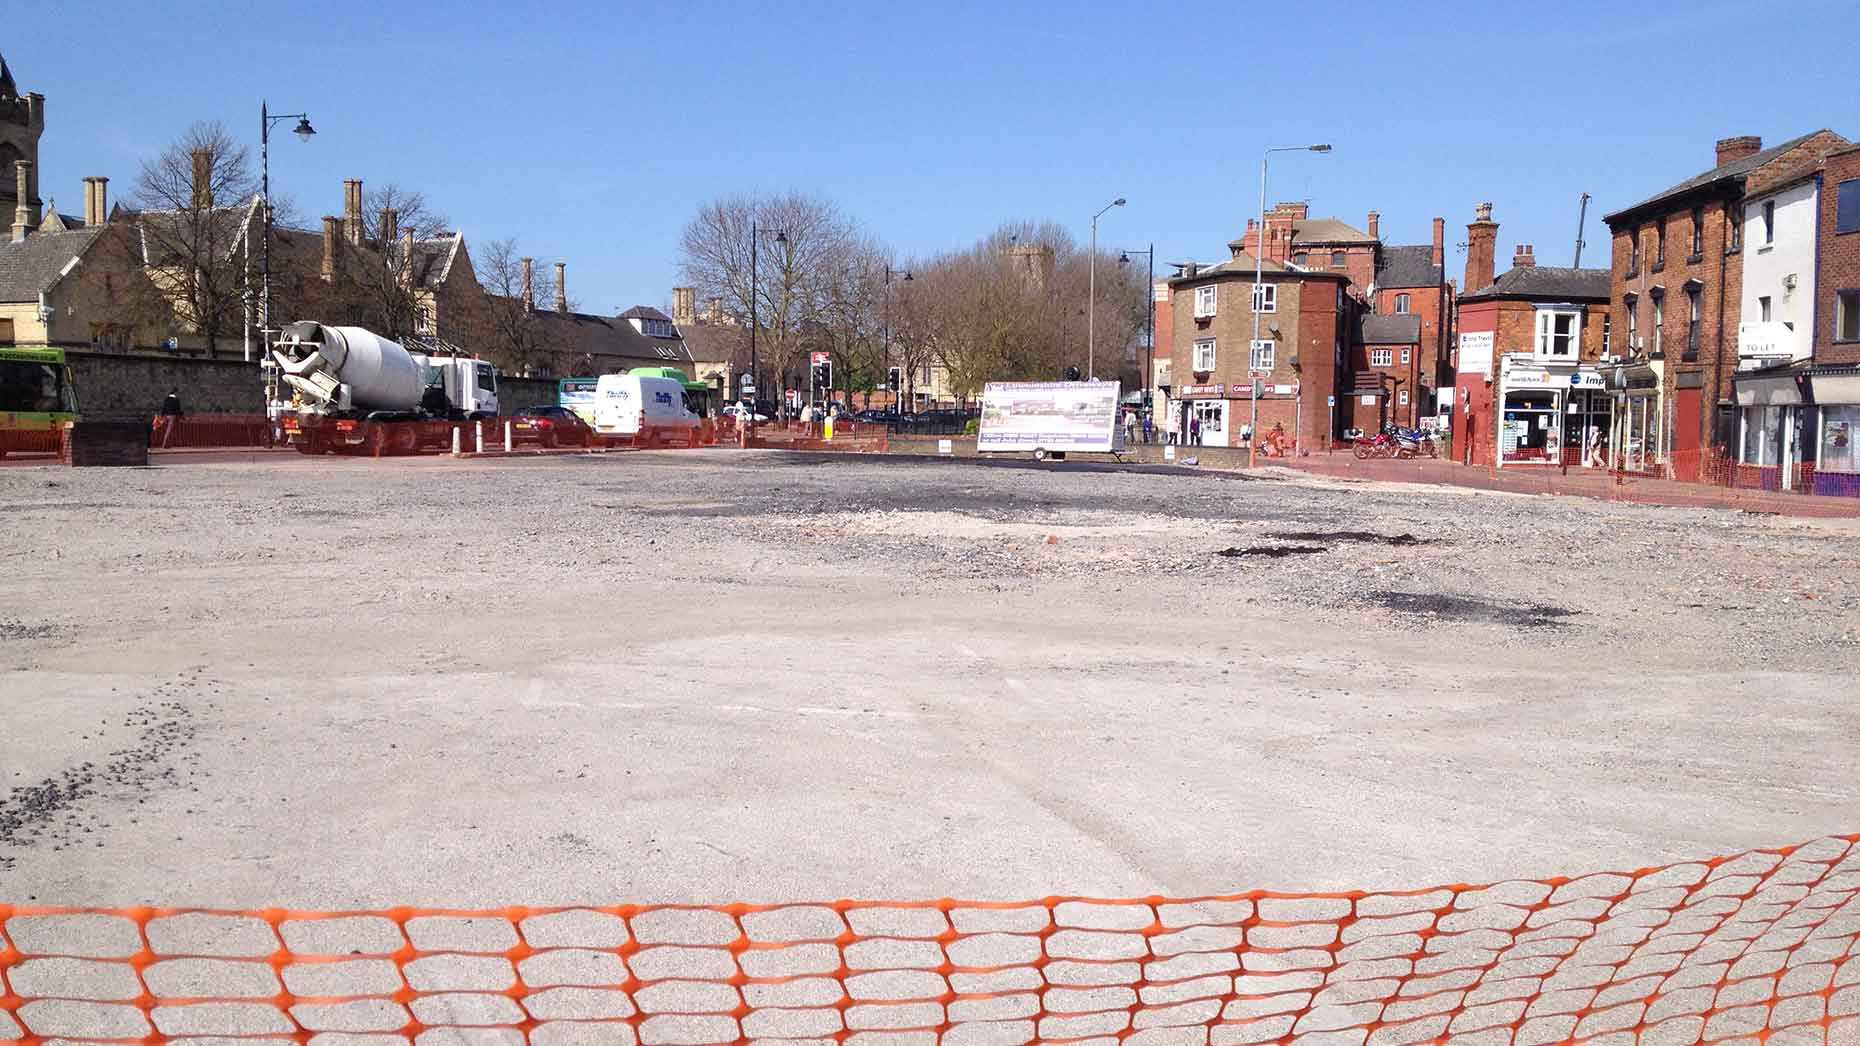 The Grand Hotel in Lincoln was demolished at the beginning of 2013.